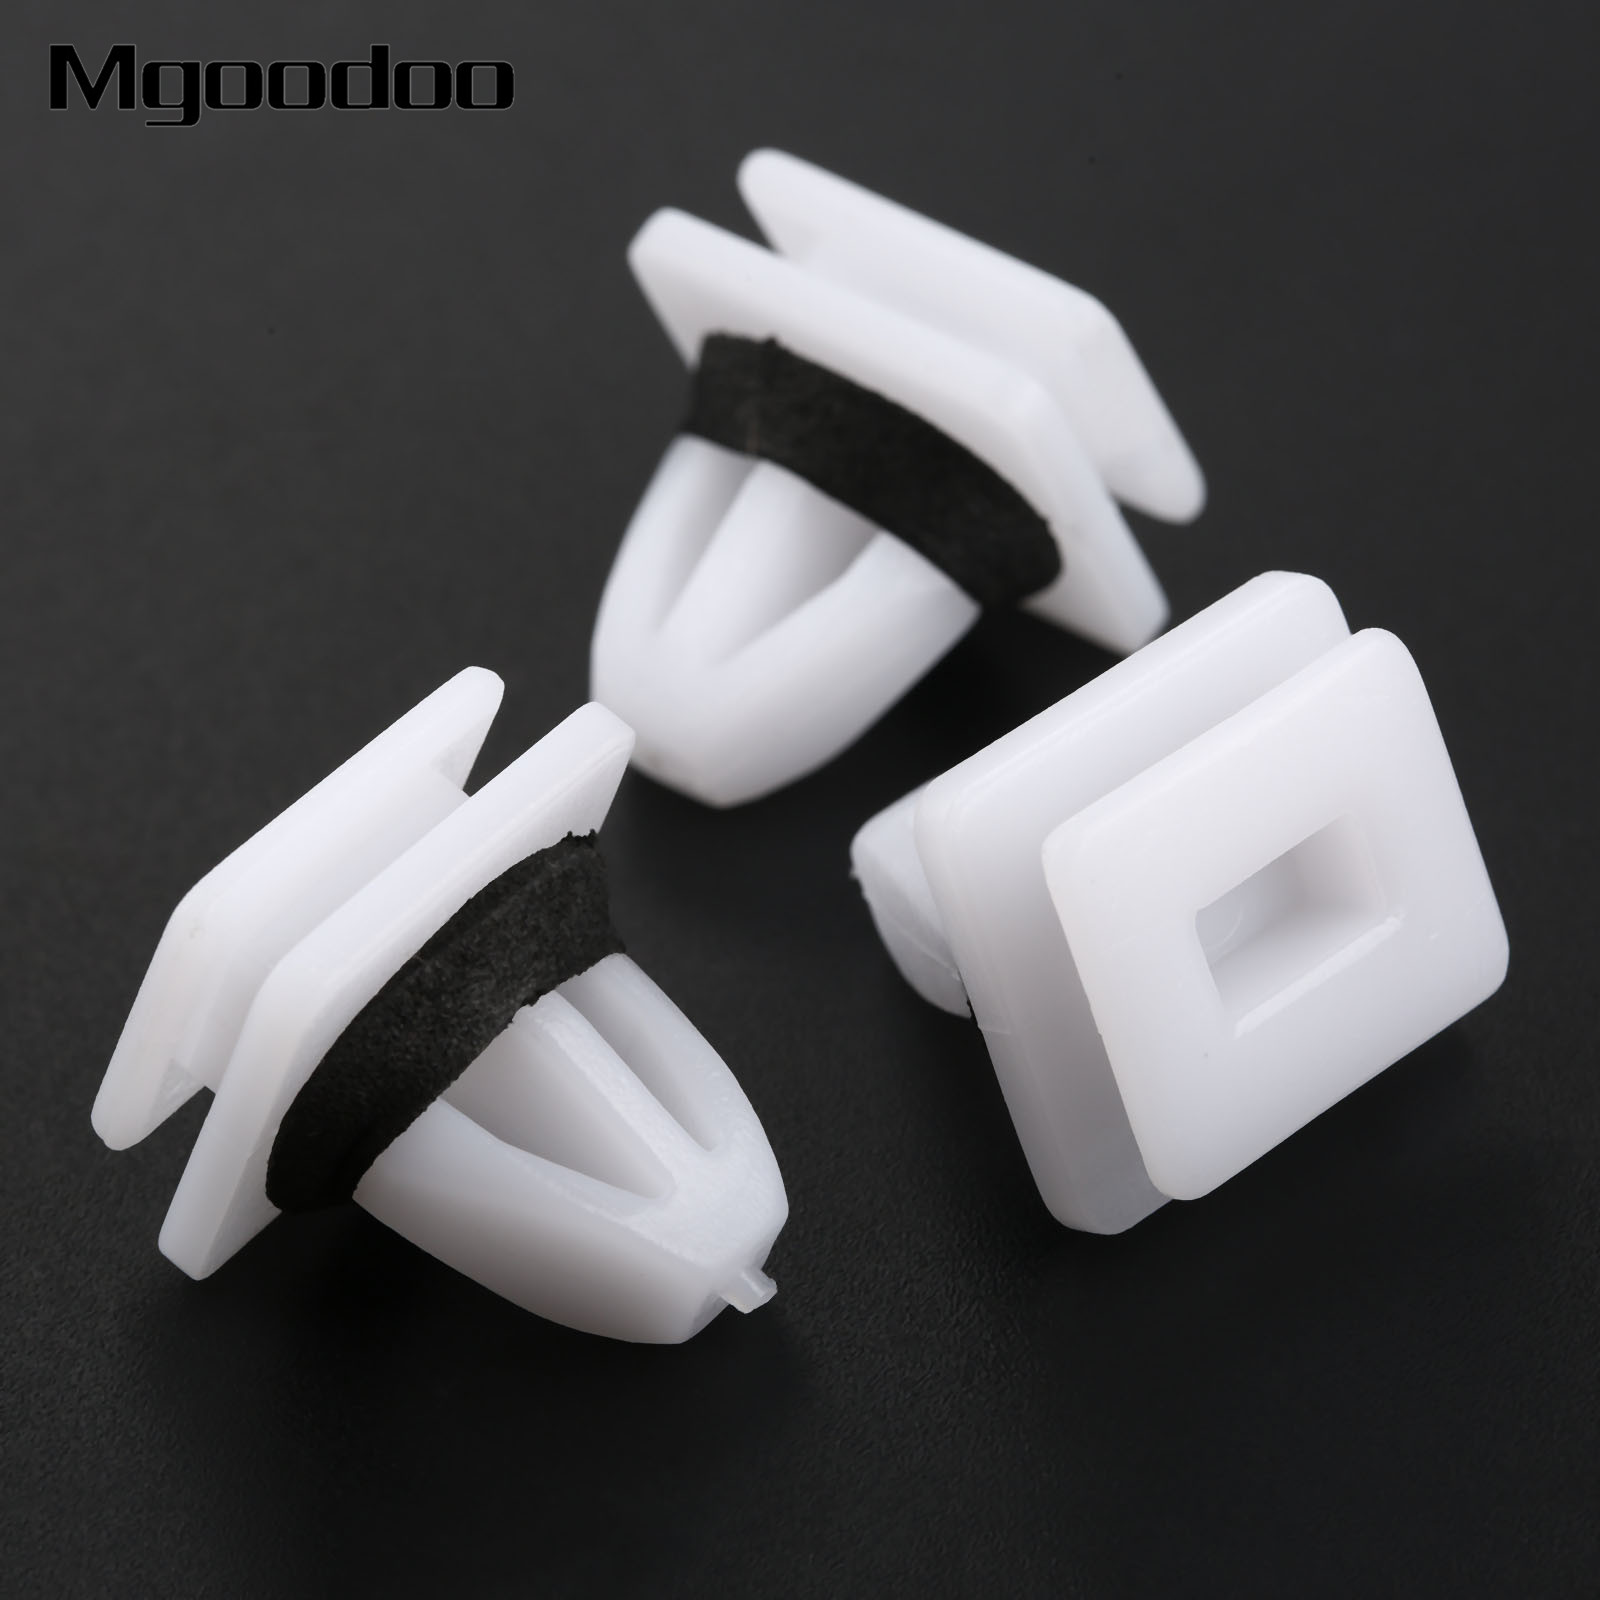 Rocker Moulding Trim Clips for Subaru 50x Side Skirt Sill Moulding Cover